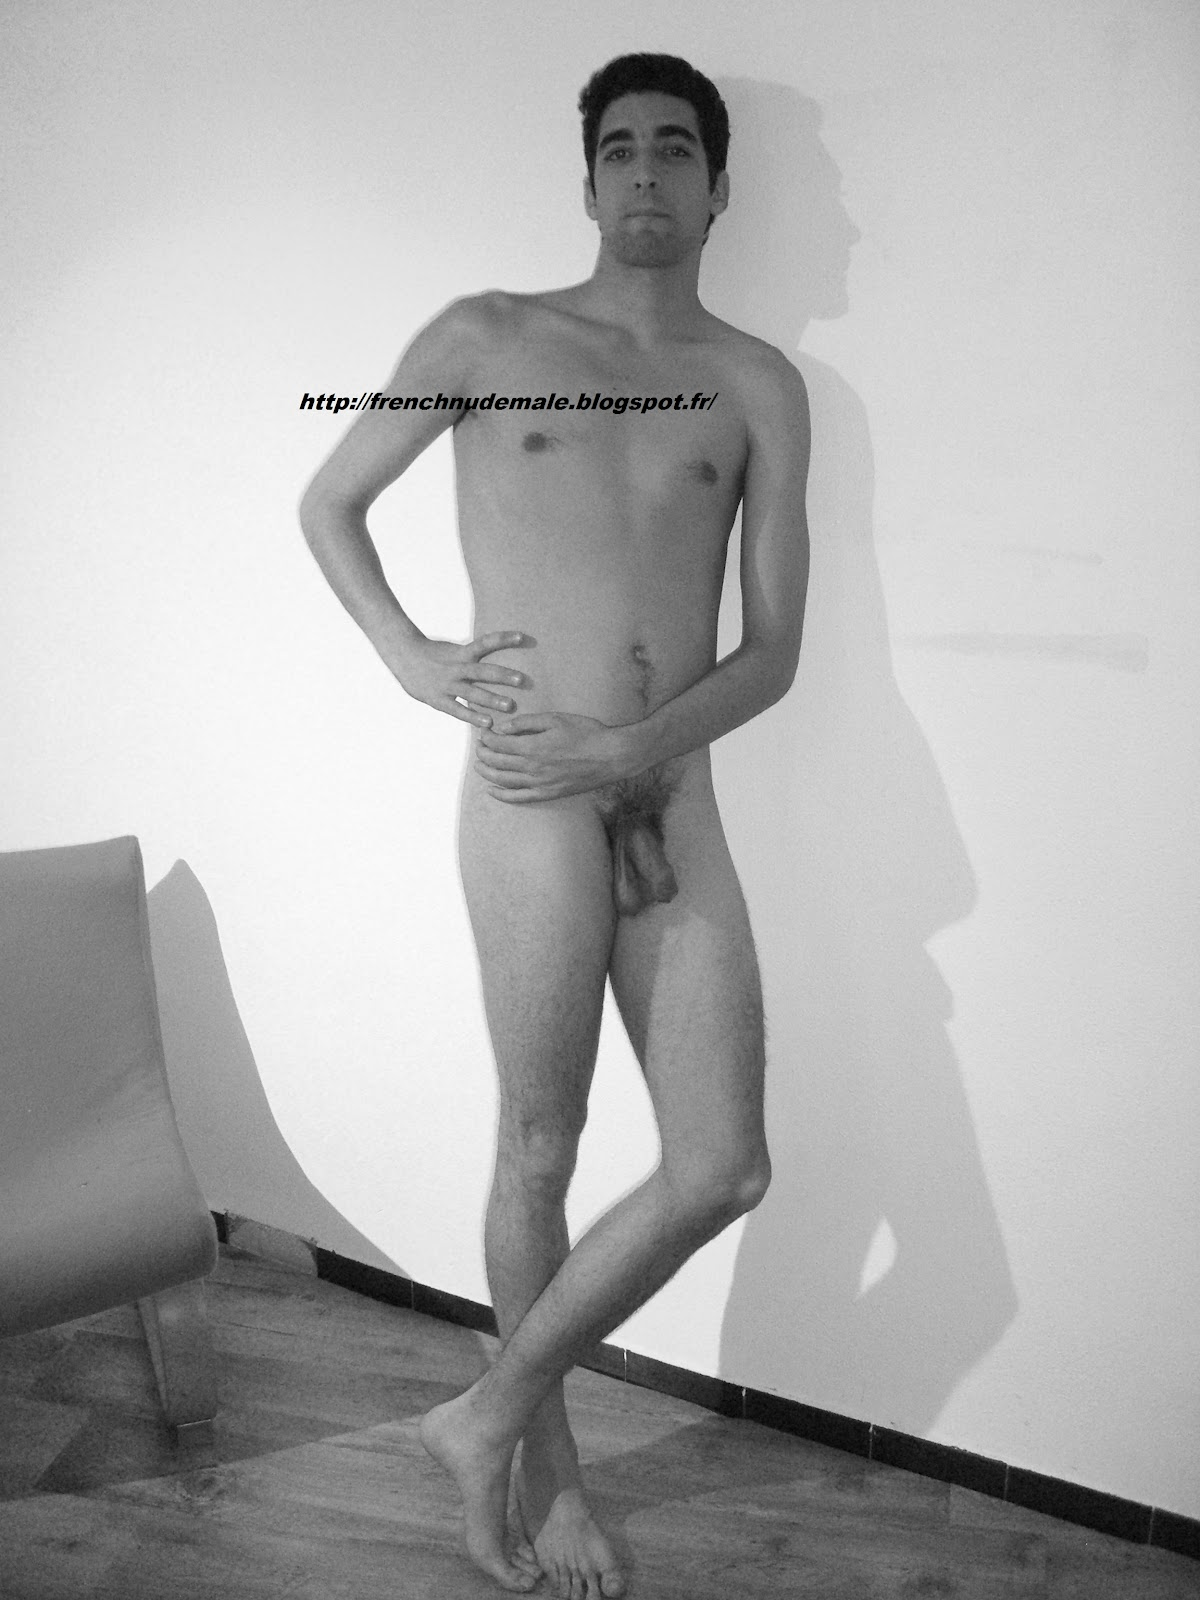 french nude male